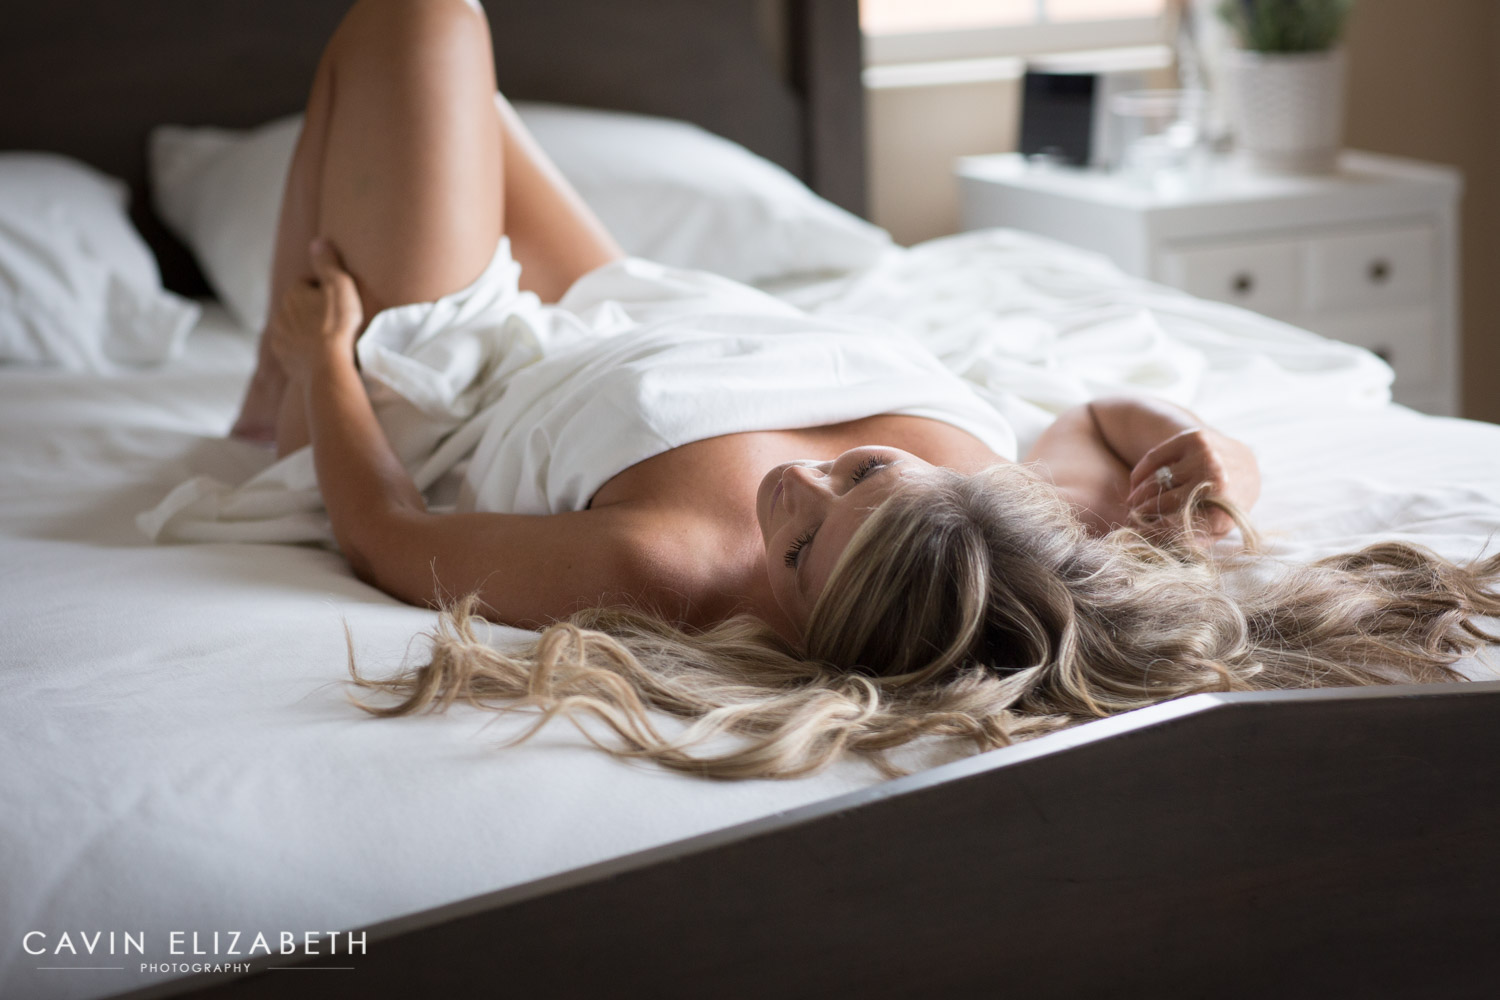 Delicieux Beautiful Boudoir Photo Ideas And Posing On The Bed, Cavin Elizabeth Photography  Boudoir Photographer In ...